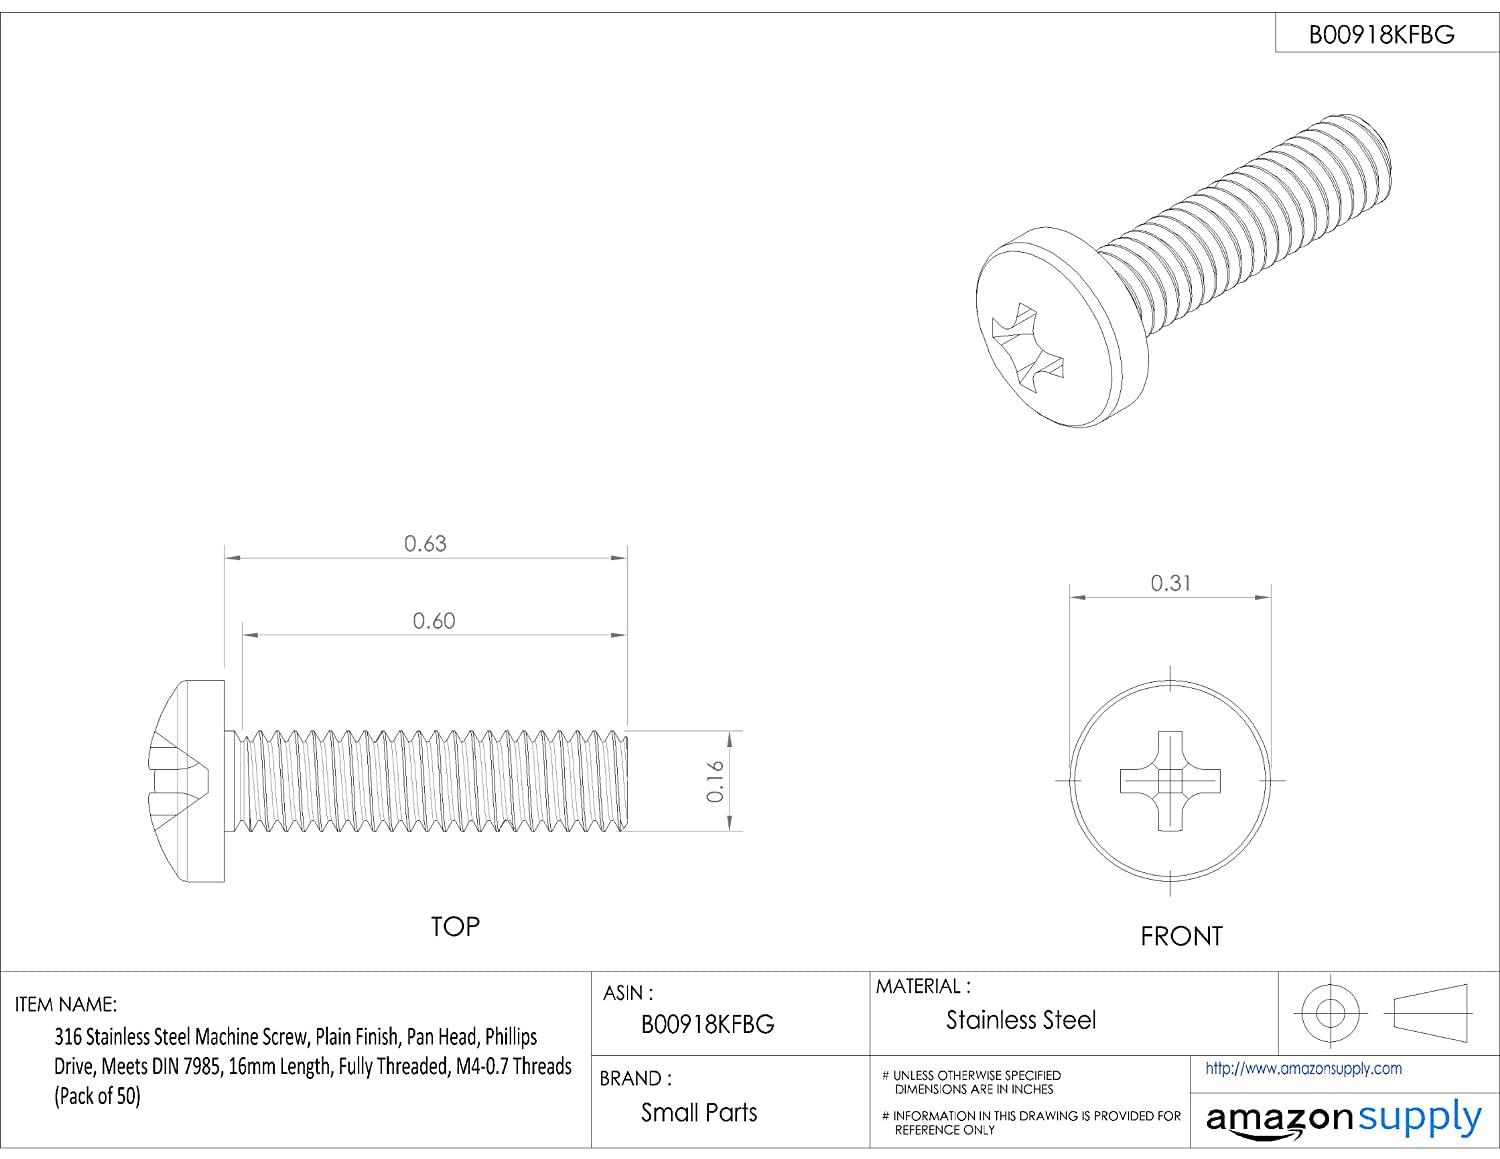 M4-0.7 Metric Coarse Threads 316 Stainless Steel Machine Screw Pan Head Plain Finish Fully Threaded Meets DIN 7985 16mm Length Small Parts B-7985A4PH4X16-B50 Phillips Drive Pack of 50